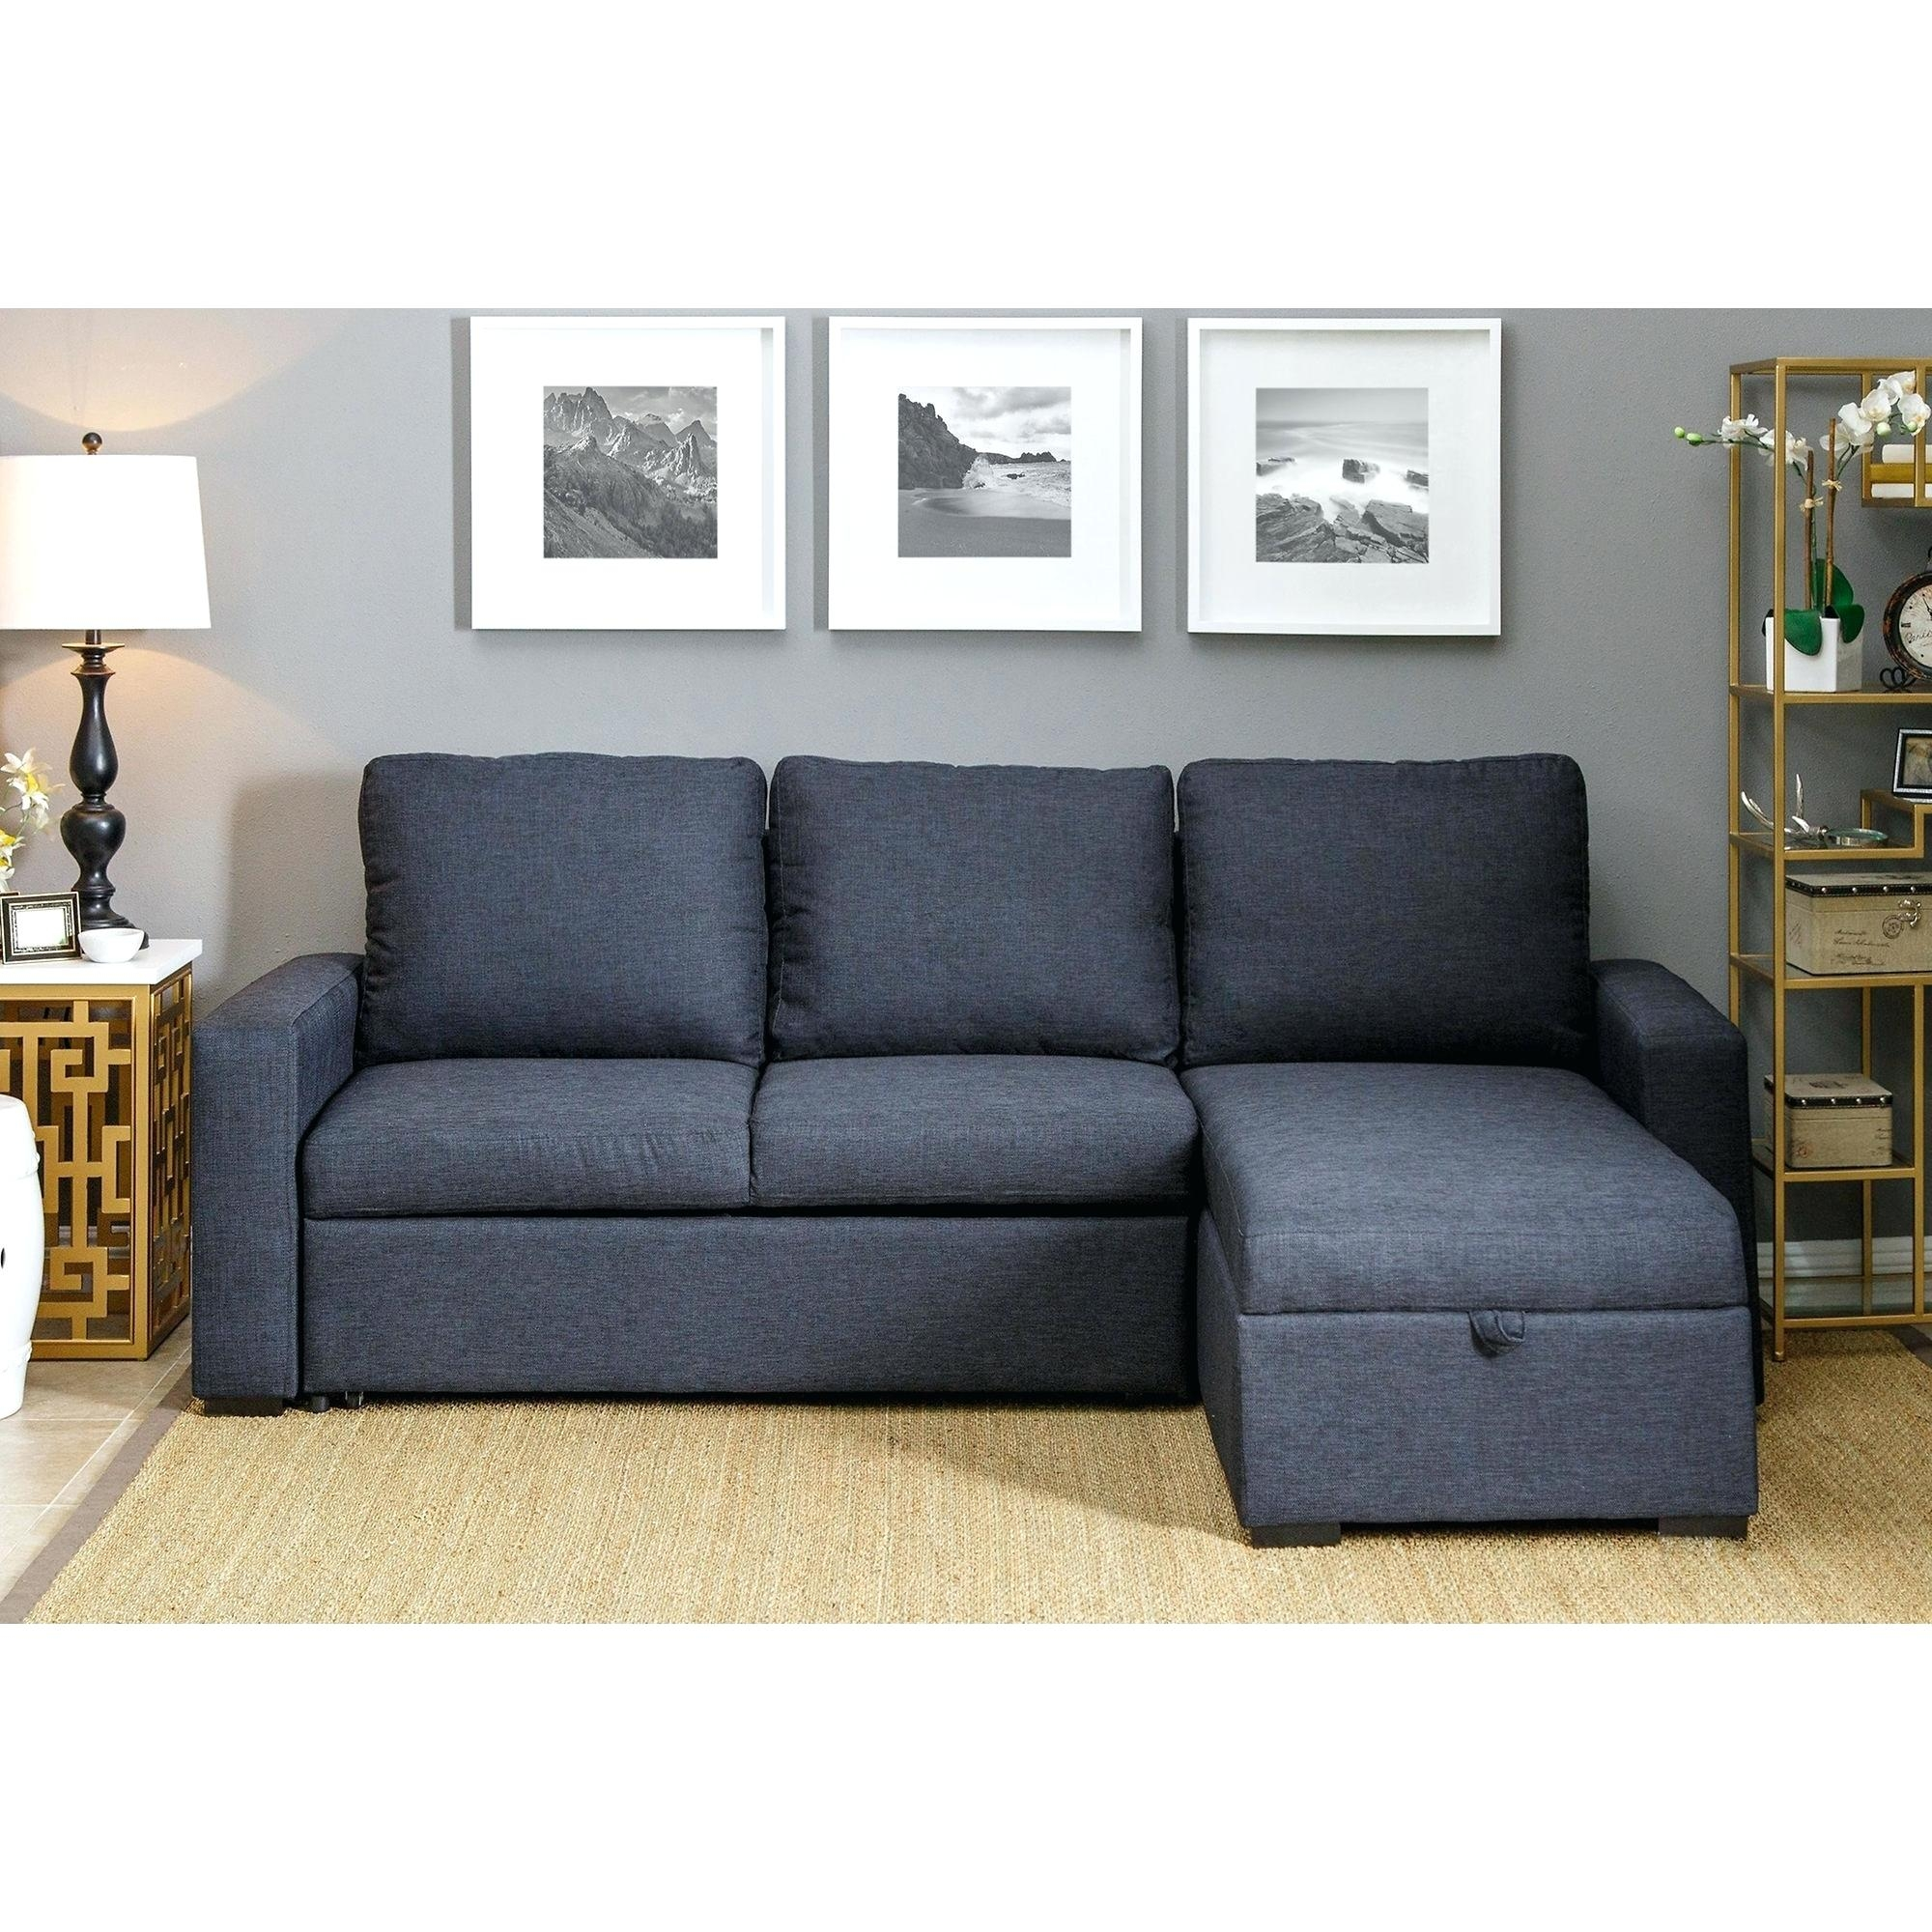 Dark Gray Ottoman Abson Living Ci D107 Crm Bailey Sectional Sofa Regarding Abbyson Living Charlotte Dark Brown Sectional Sofa And Ottoman (Image 9 of 15)